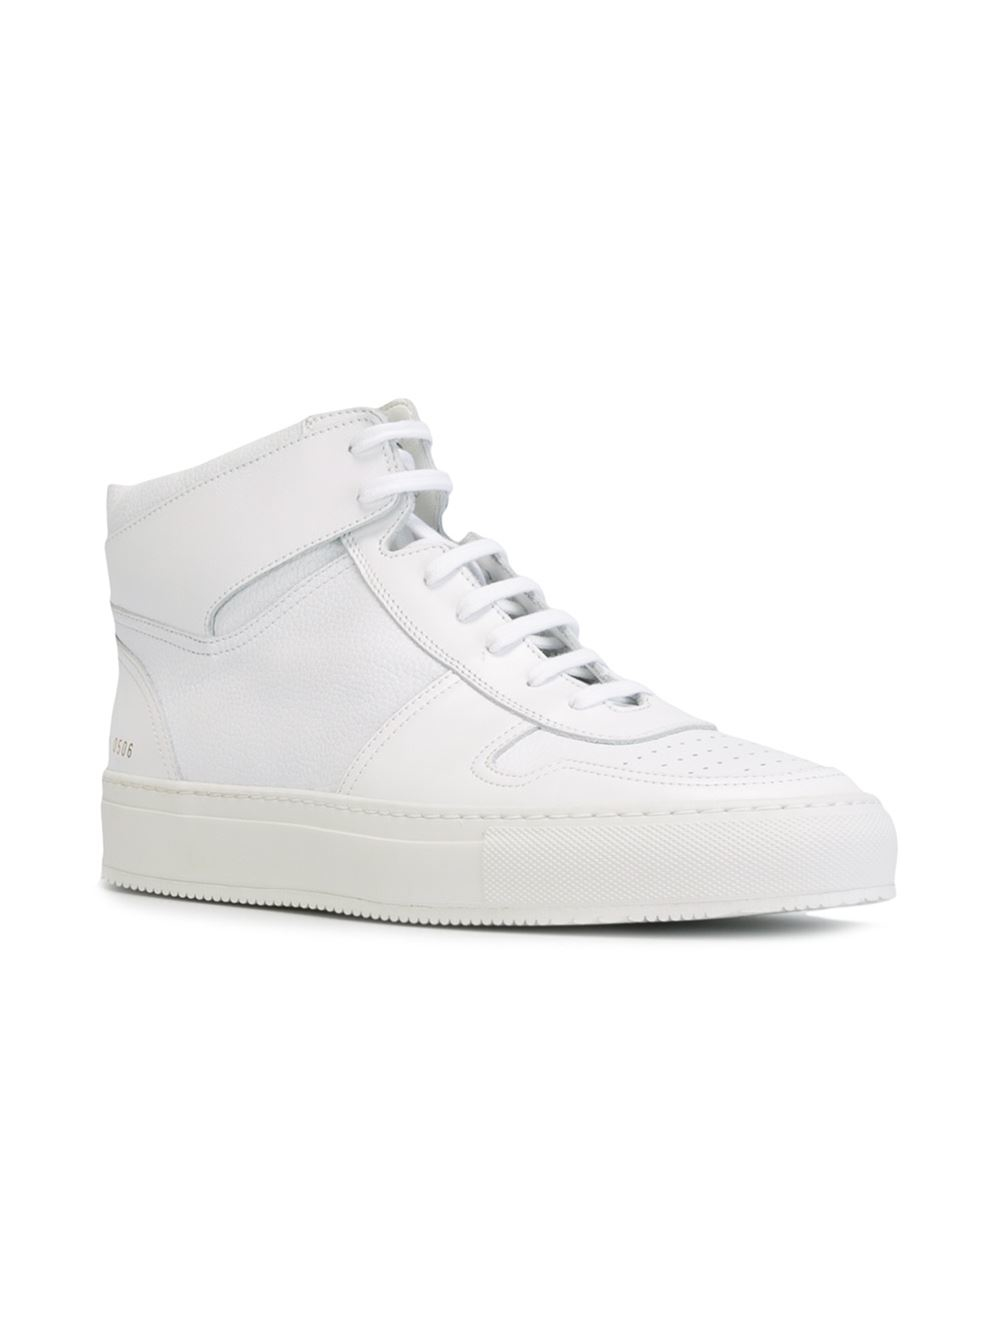 common projects hi top sneakers in white for men lyst. Black Bedroom Furniture Sets. Home Design Ideas